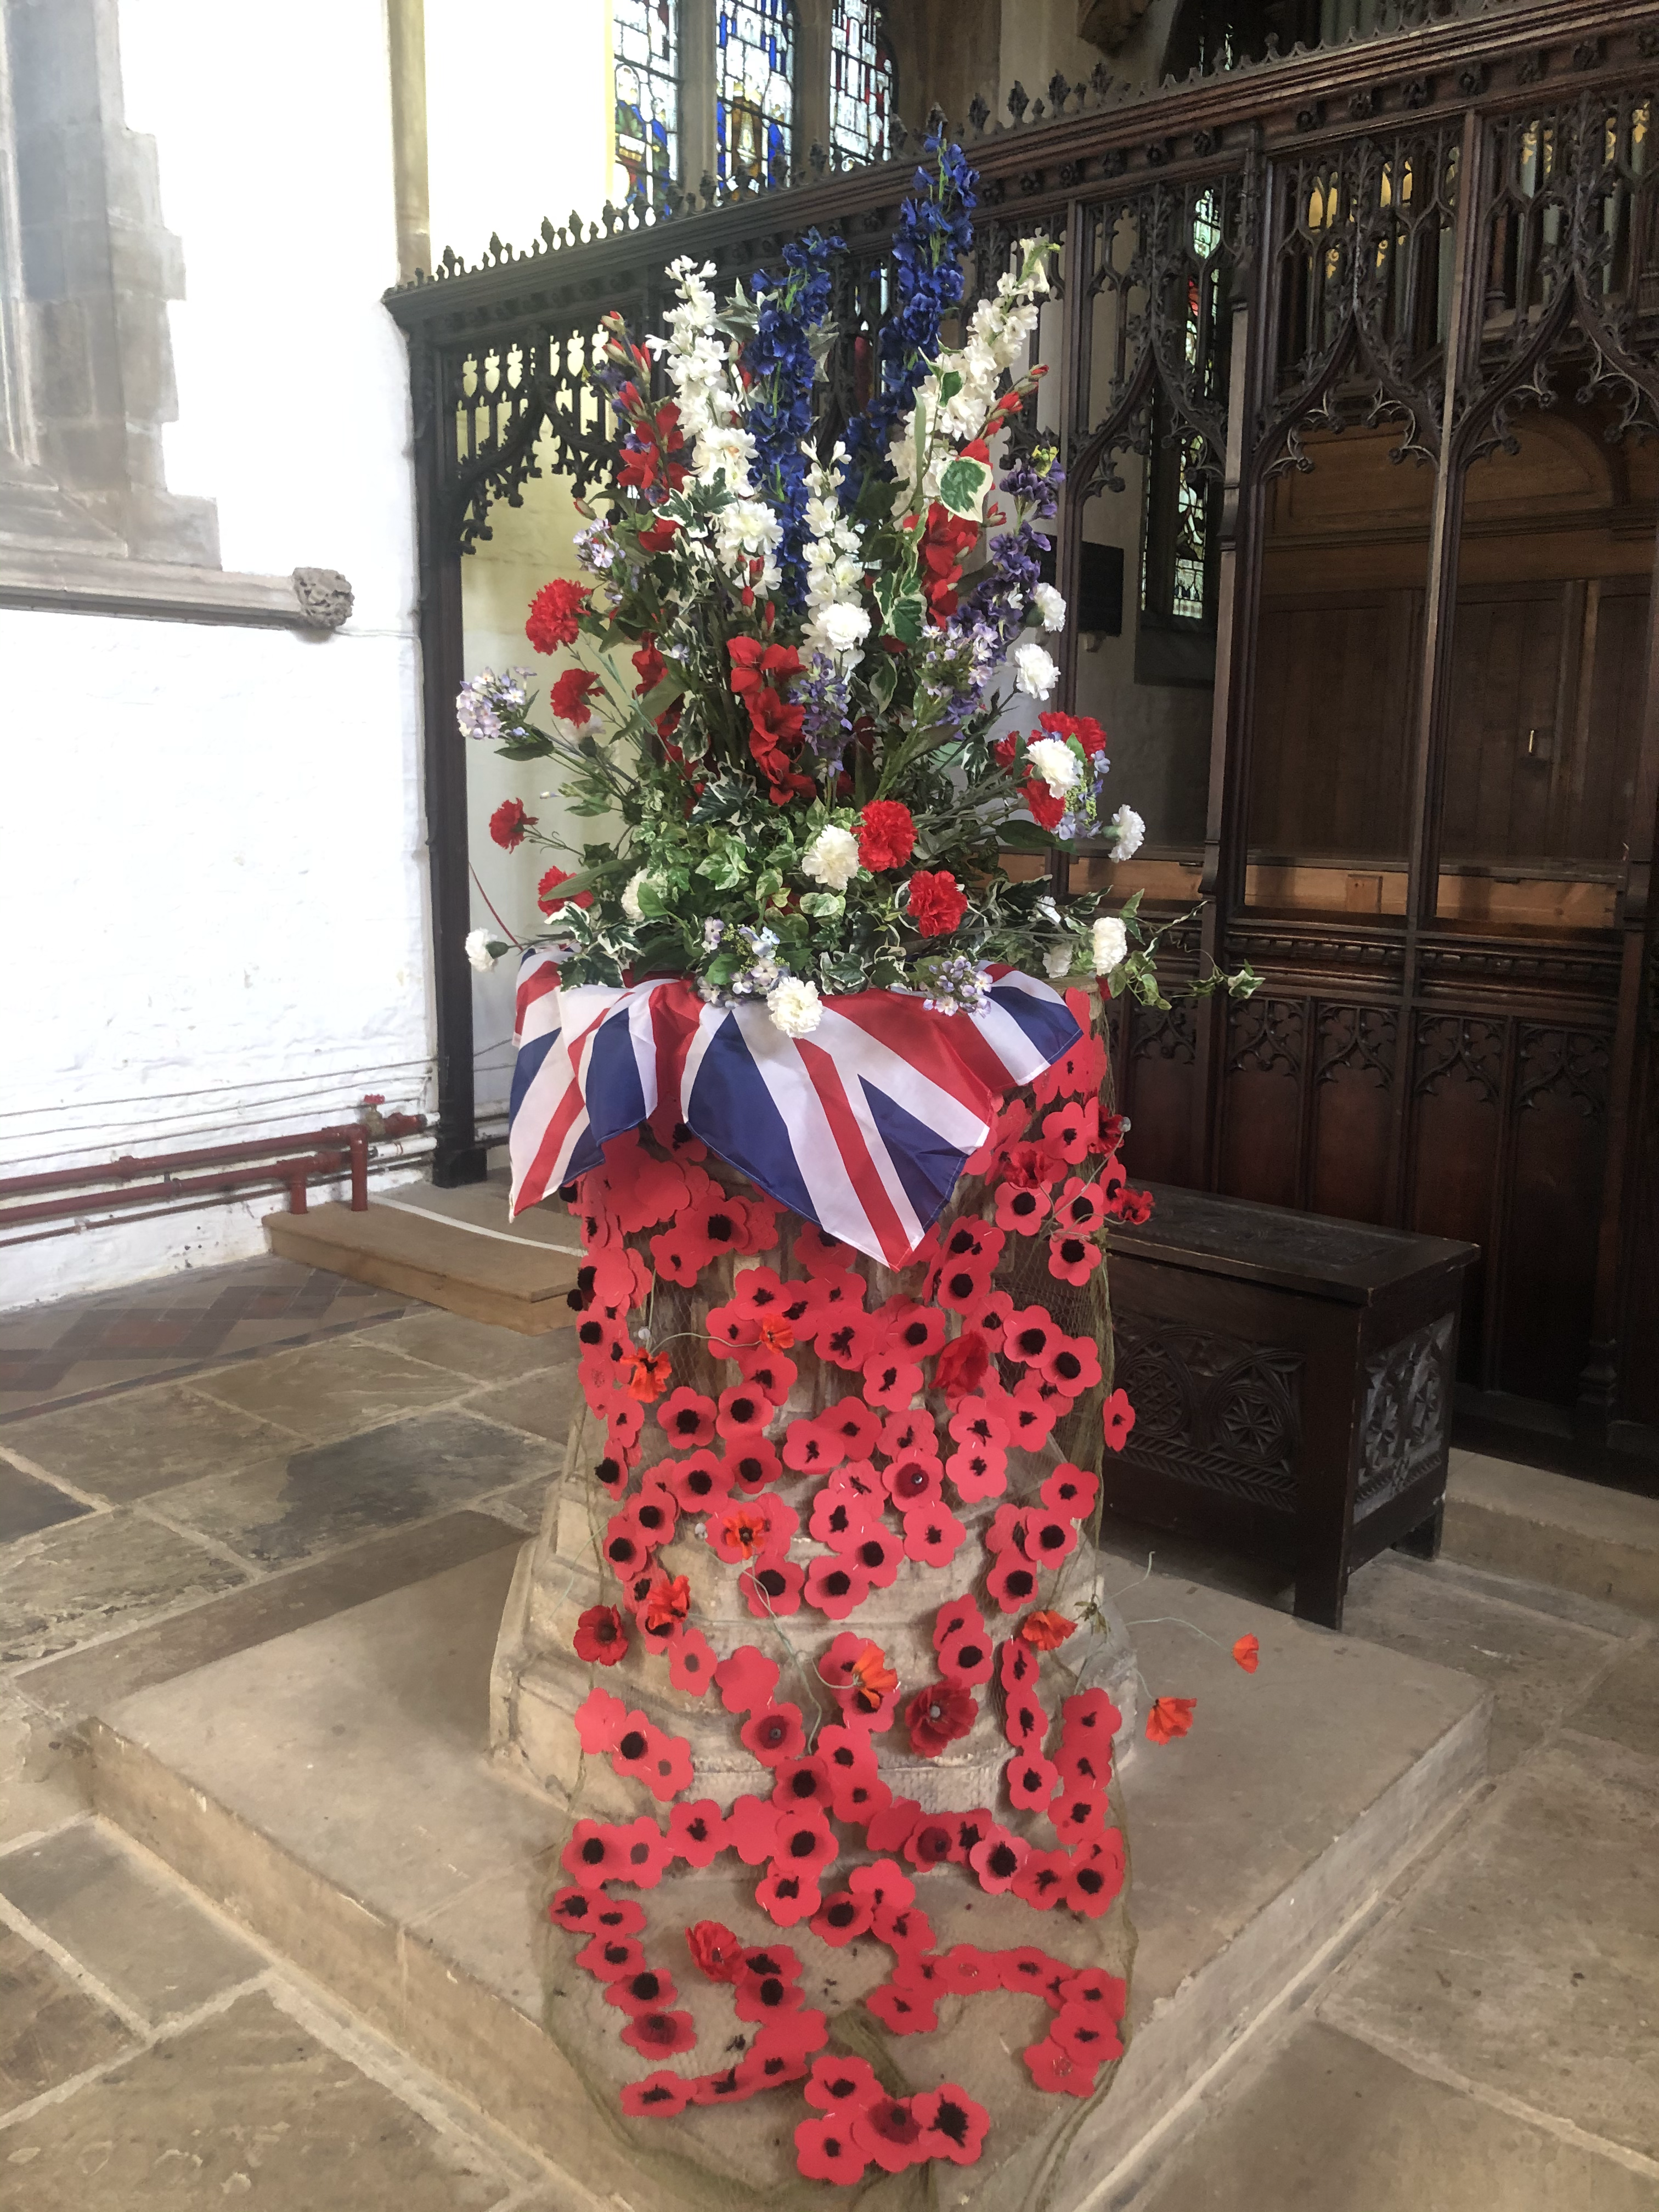 church remembrance display 2020.HEIC